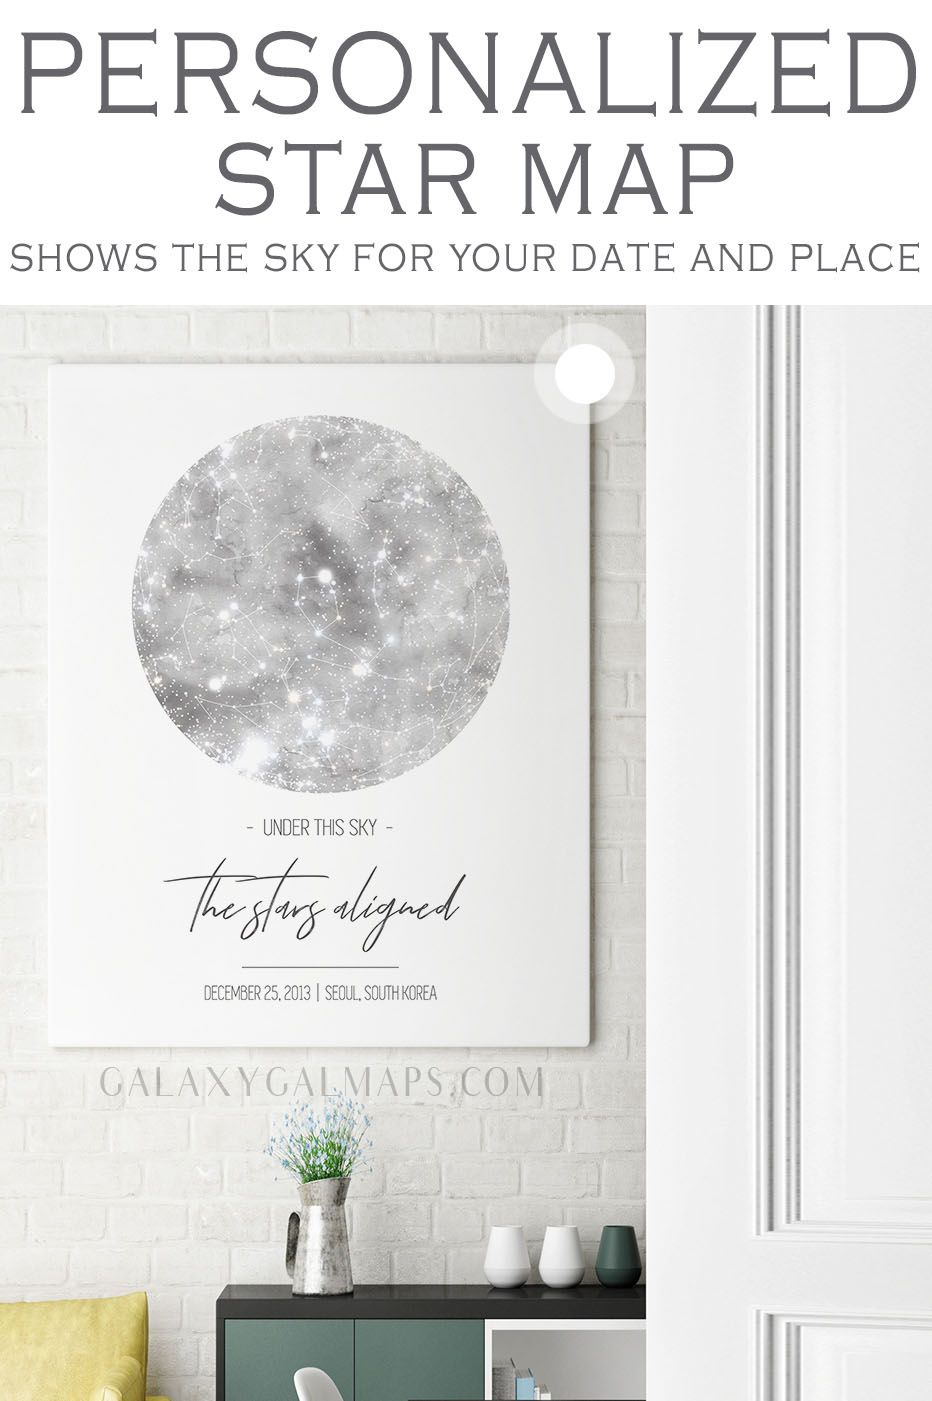 UNIQUE Sky Map for That Special Date Crystal Wall Art